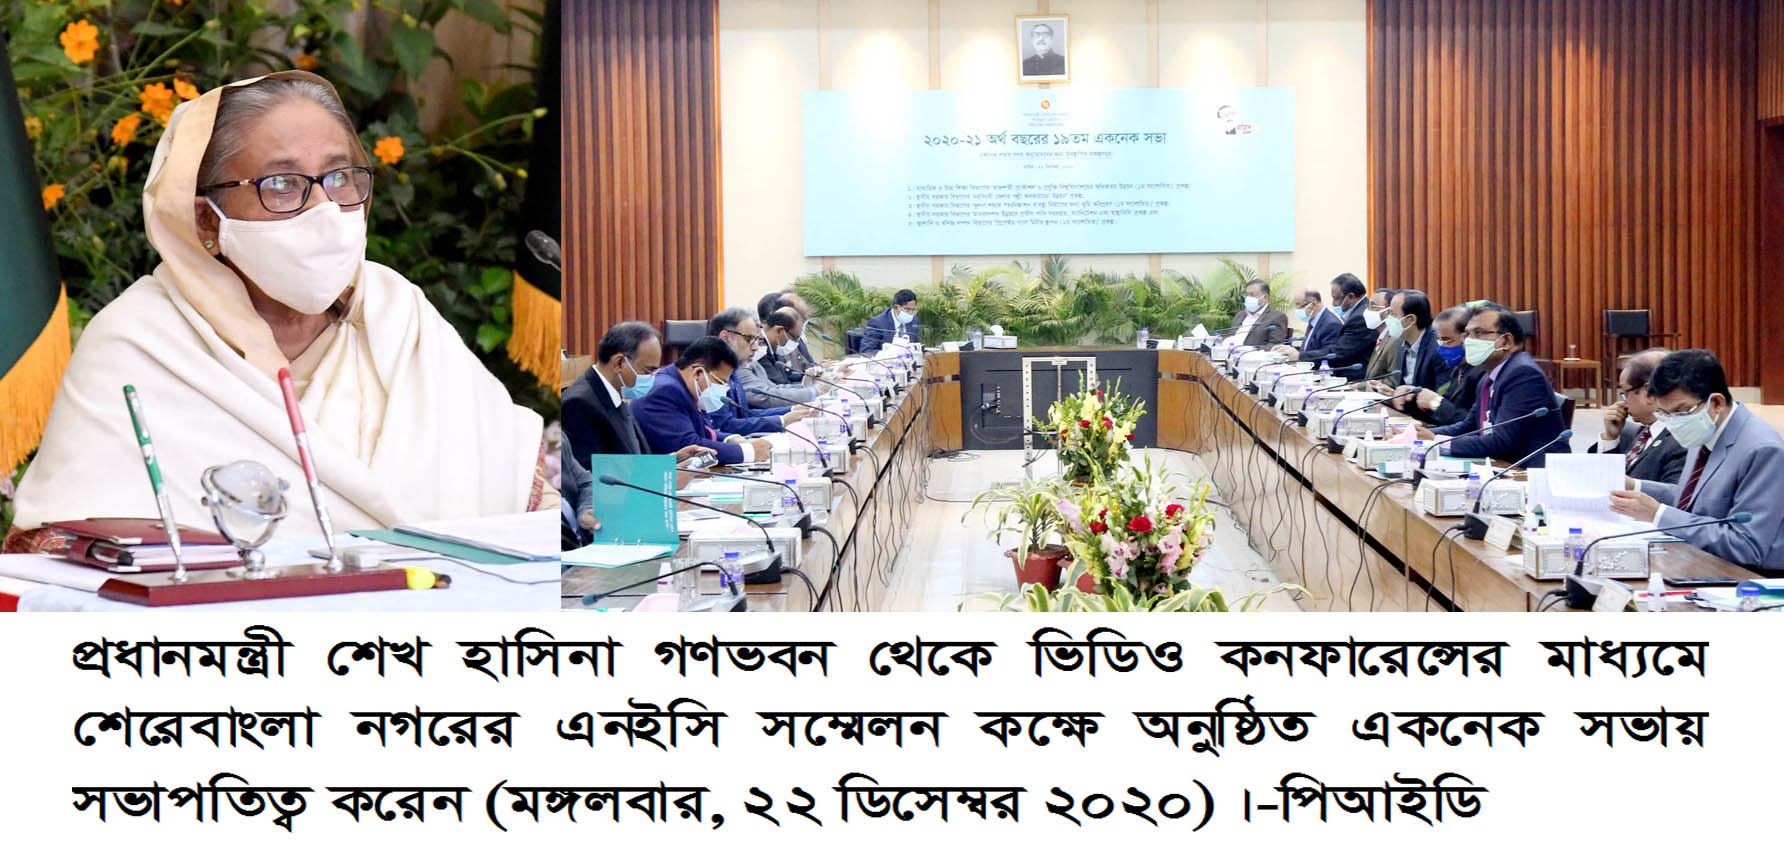 Sheikh Hasina attends crucial meeting